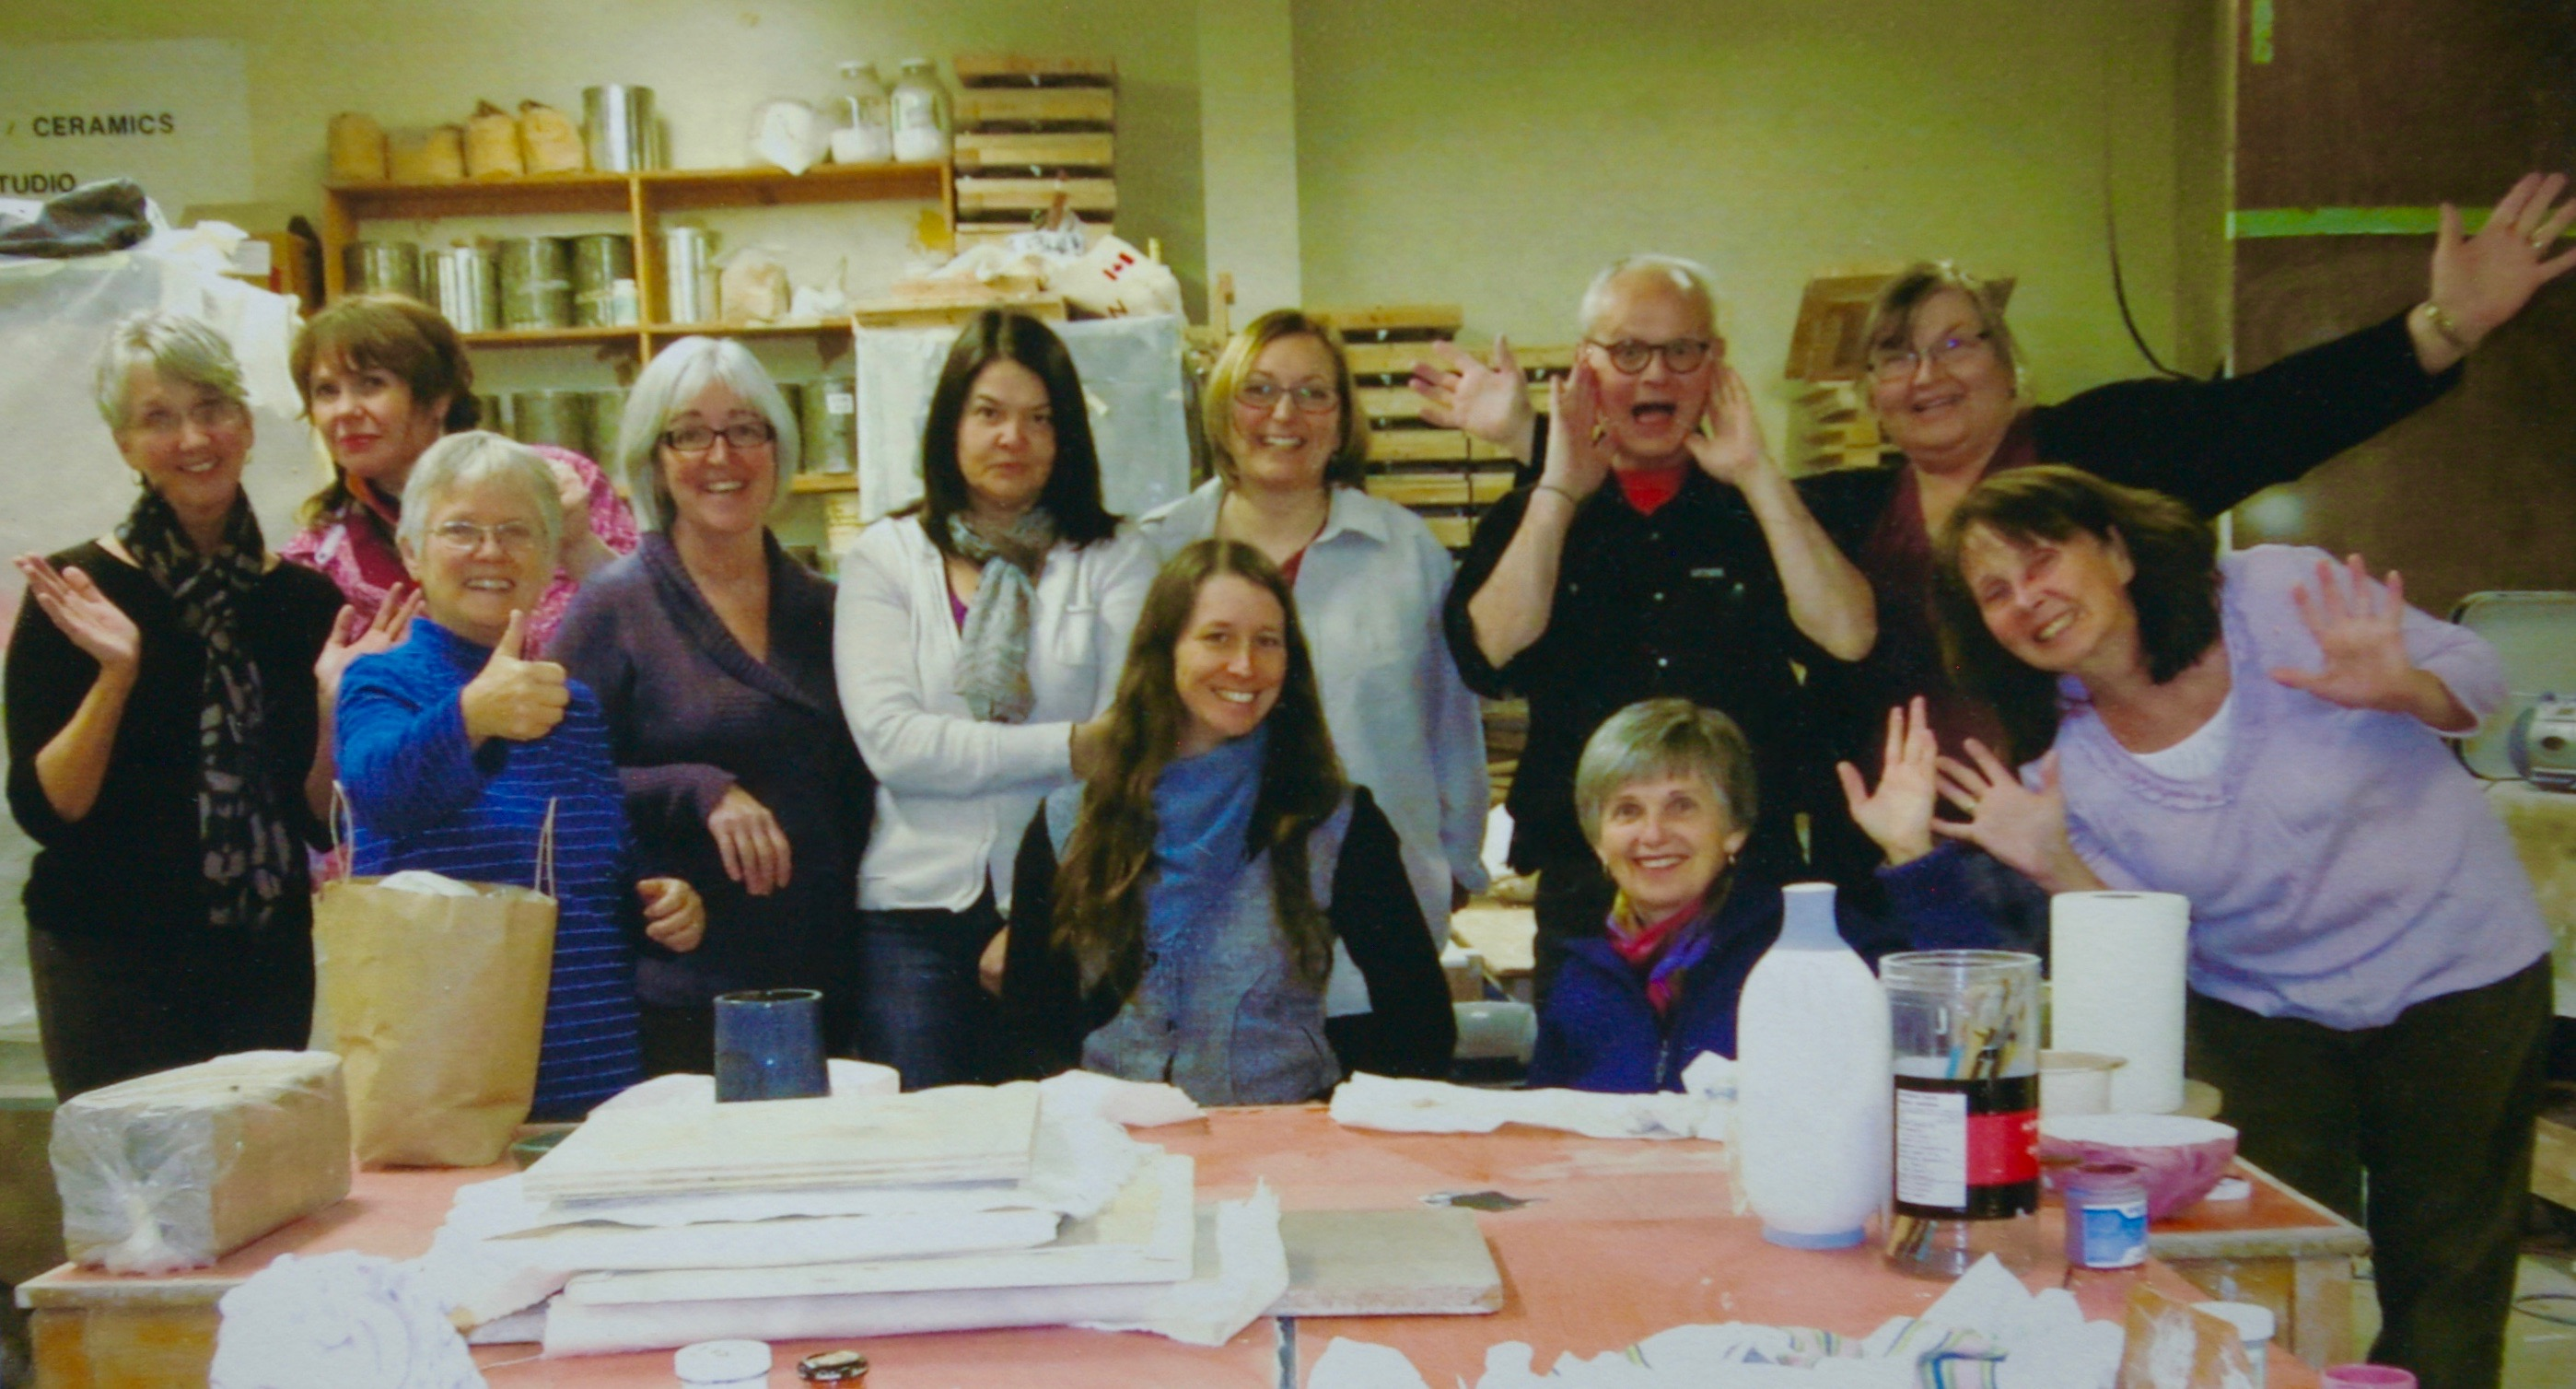 Last clay day class at Canadore_2012.jpg